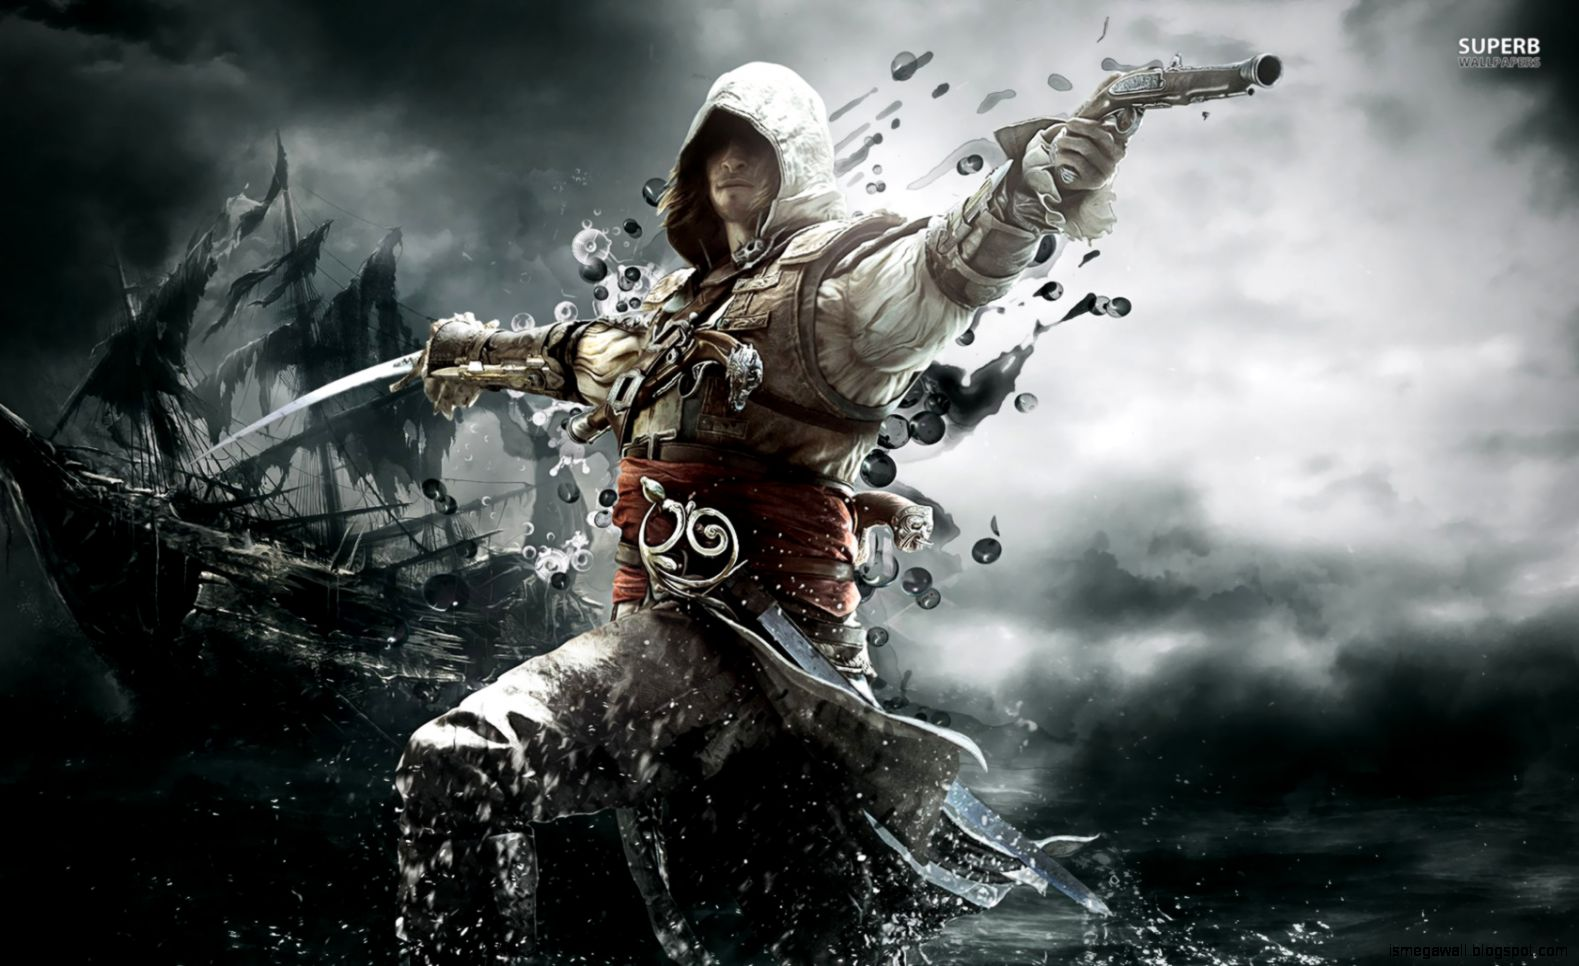 aveline assassins creed 4 black flag wallpapers - Aveline Assassin s Creed 4 Black Flag Wallpapers HD